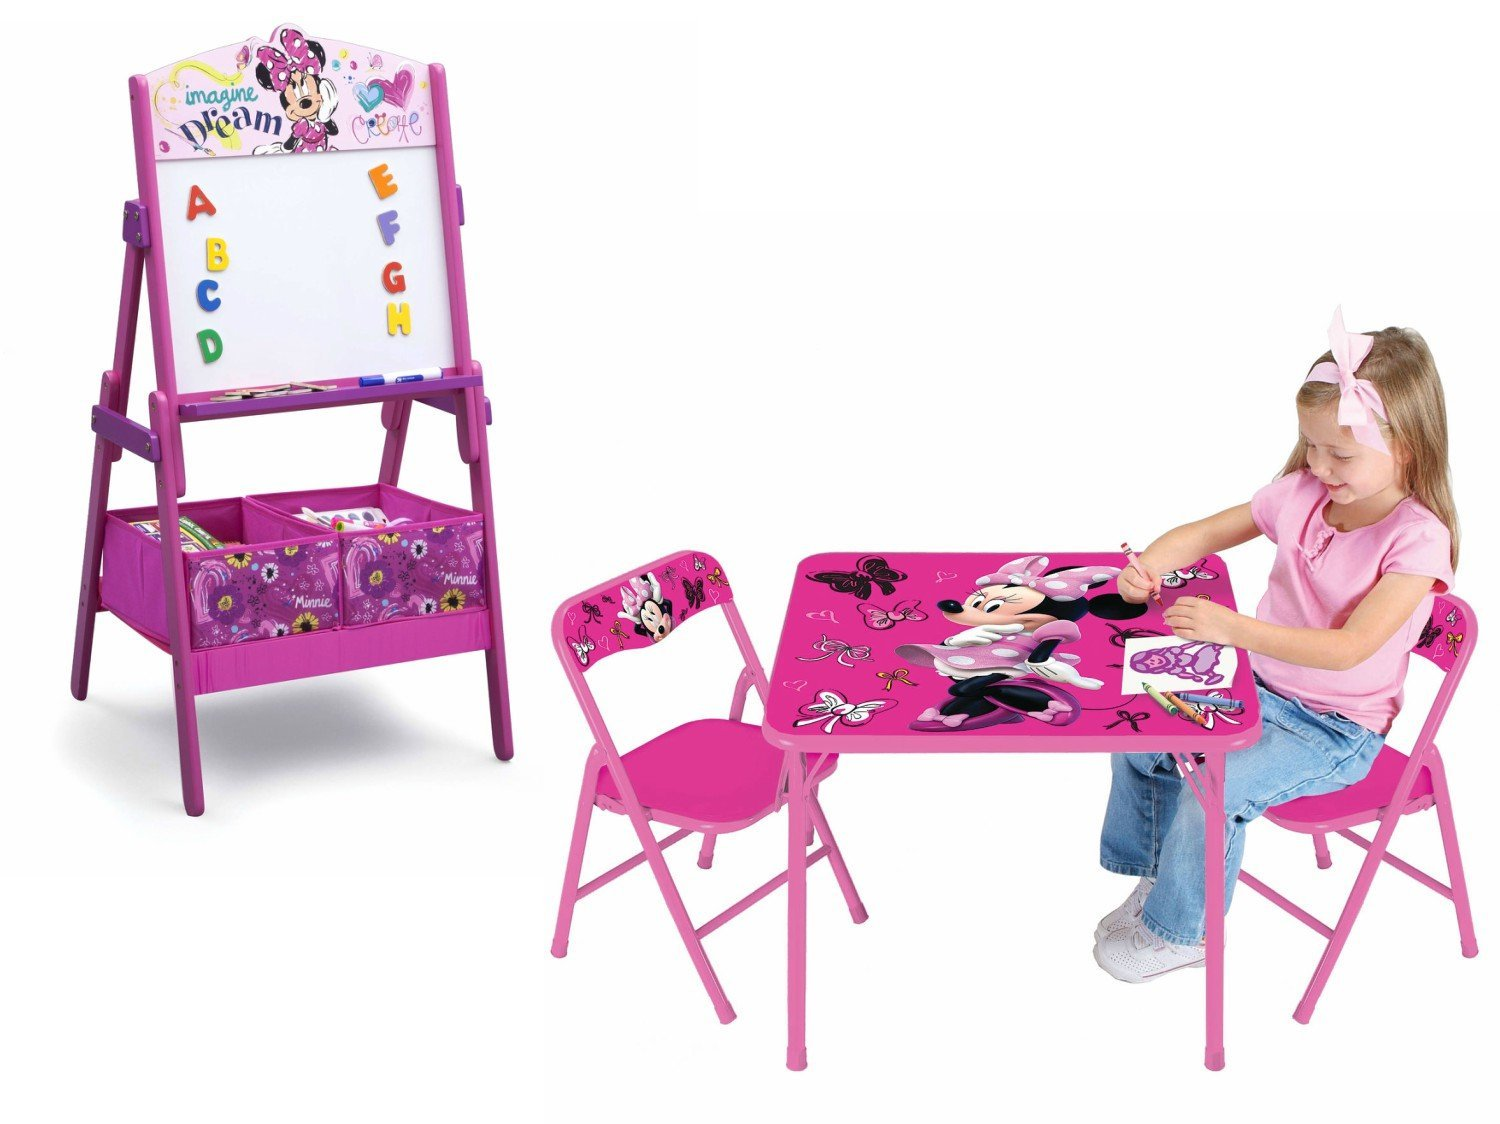 Pleasing Buy Minnie Mouse Kids Furniture Activity Table Chair Play Pdpeps Interior Chair Design Pdpepsorg